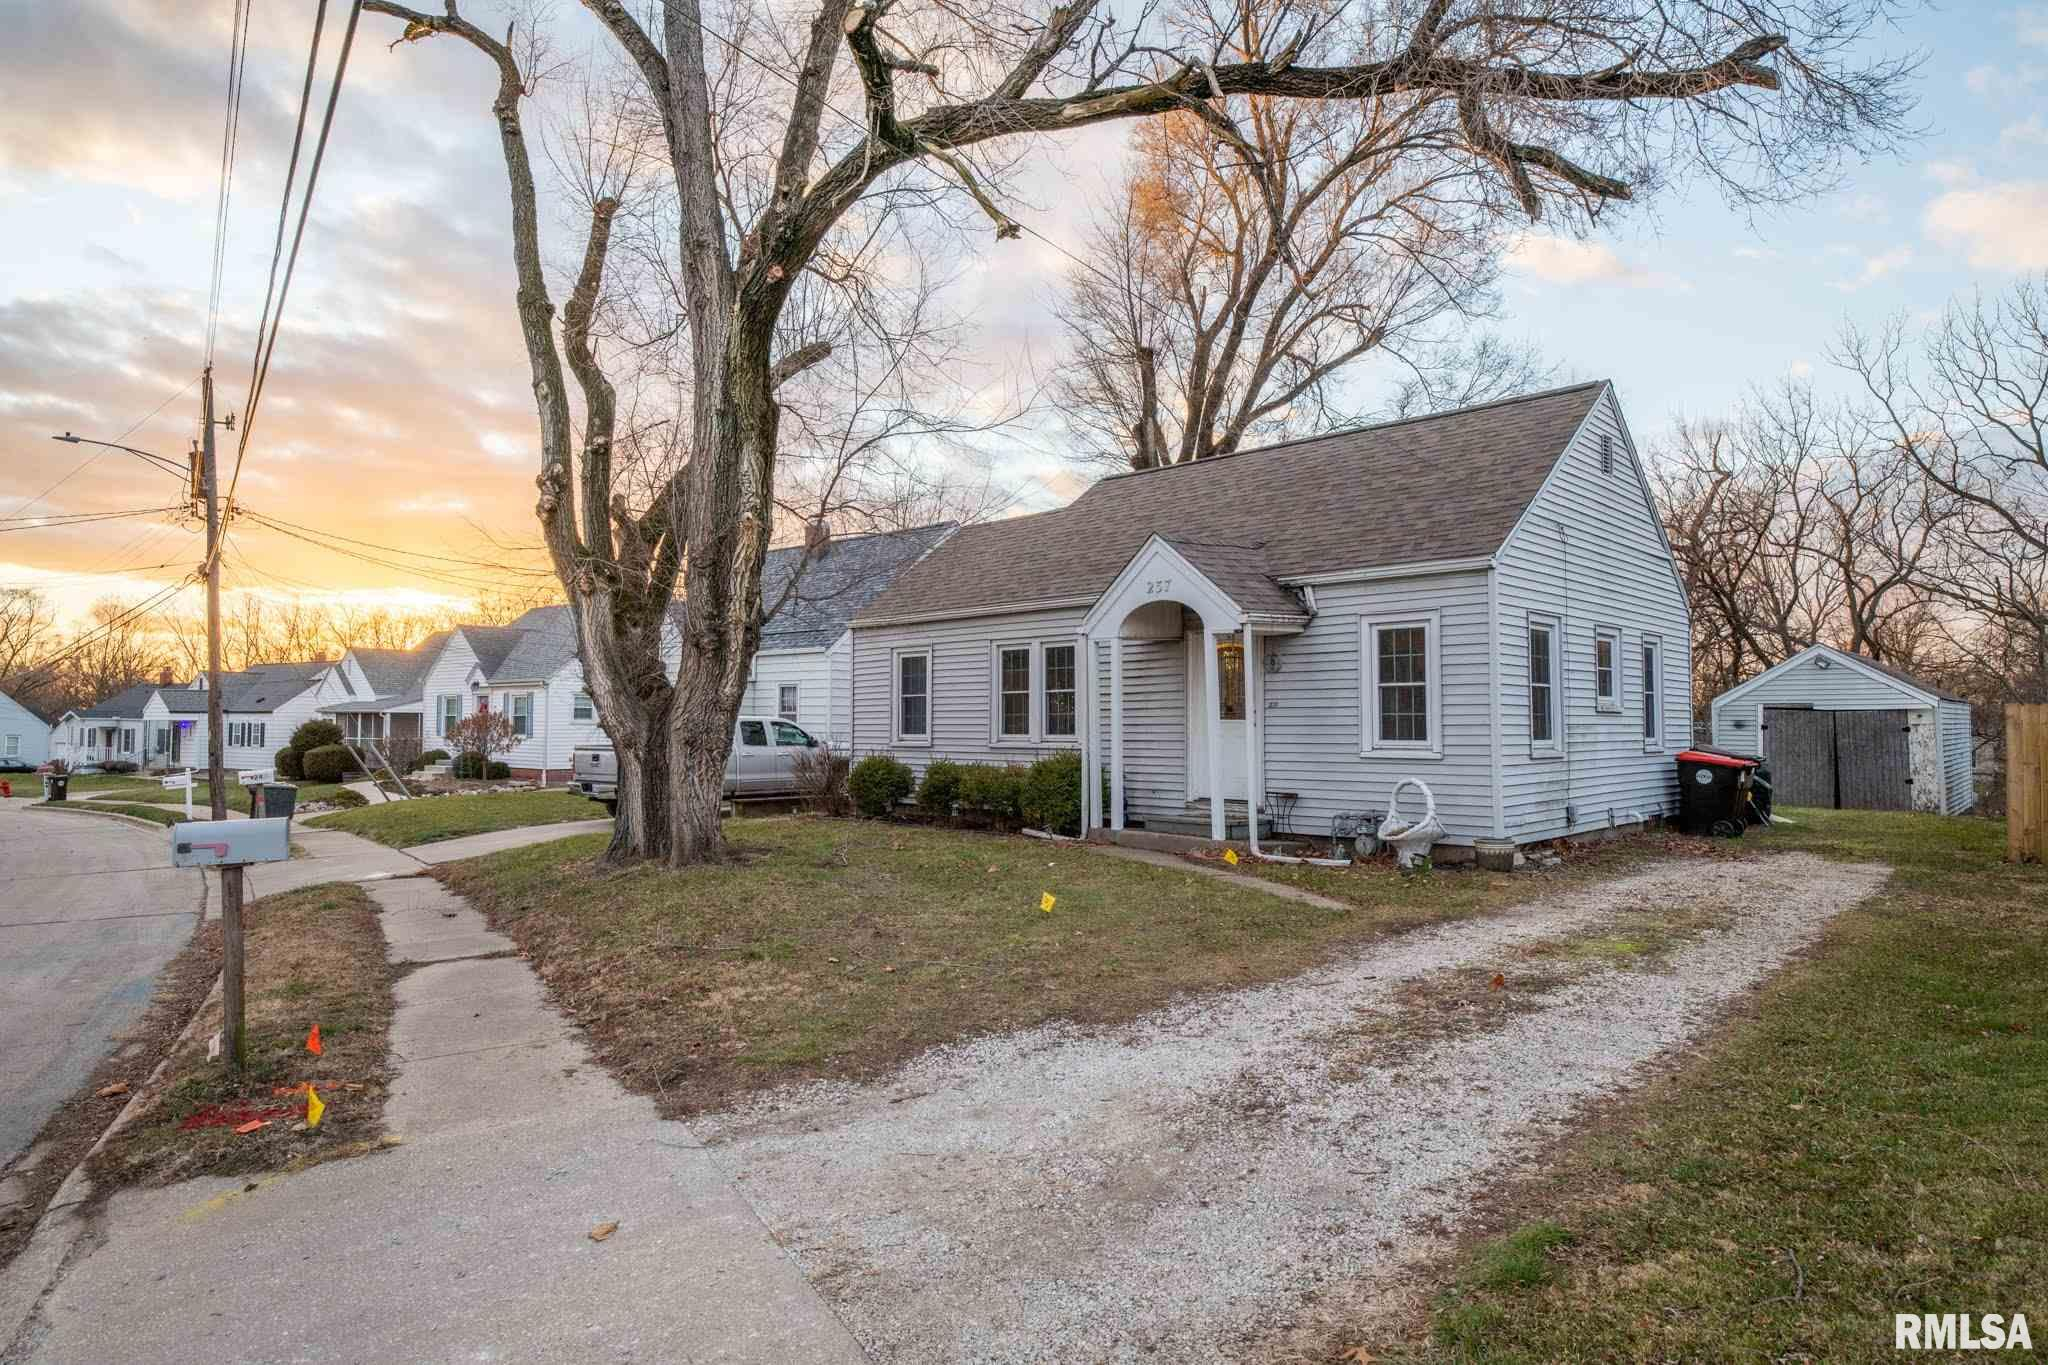 237 S THORNCREST Property Photo - Creve Coeur, IL real estate listing